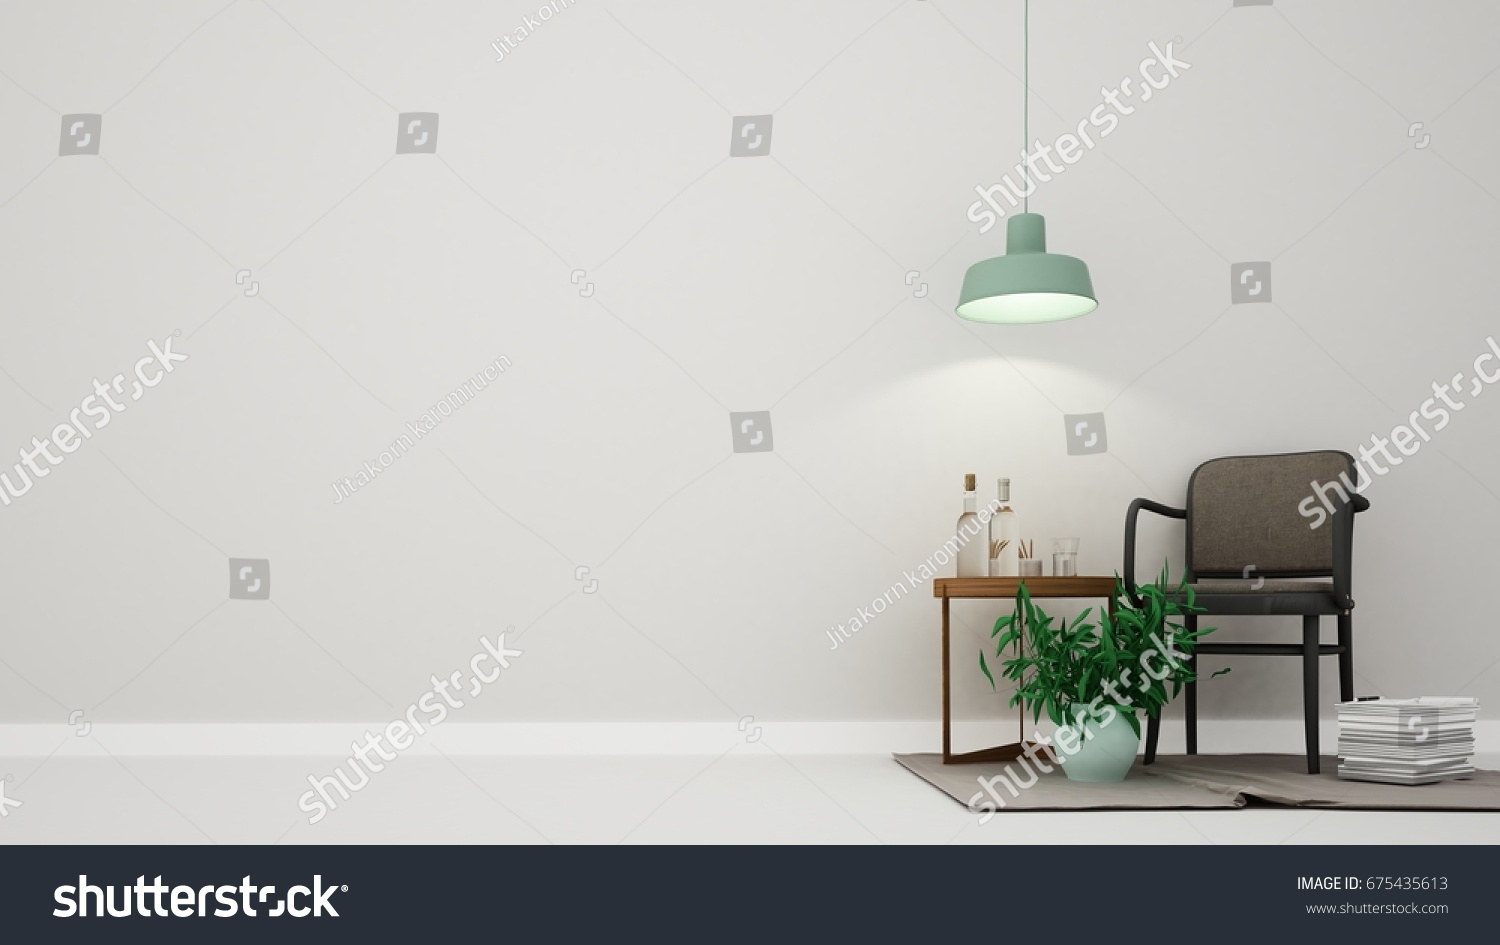 minimal furniture. Interior Minimal Relax Space Furniture 3d Rendering And Background White Decoration Dark Color